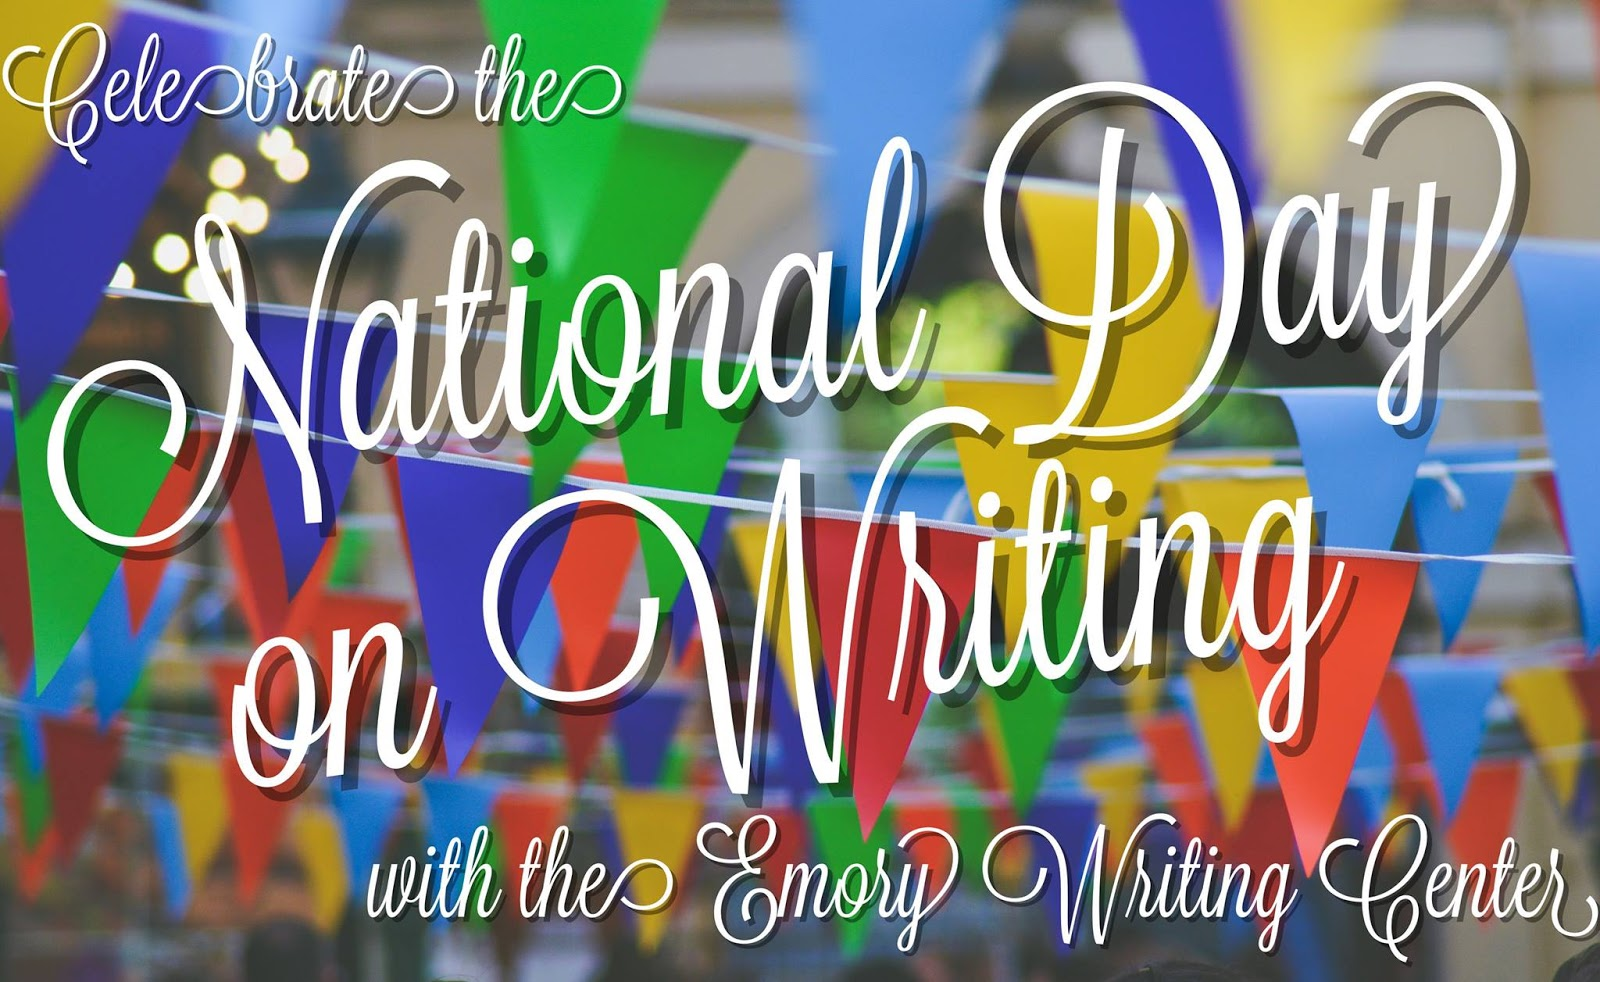 National Day on Writing Wishes Awesome Picture